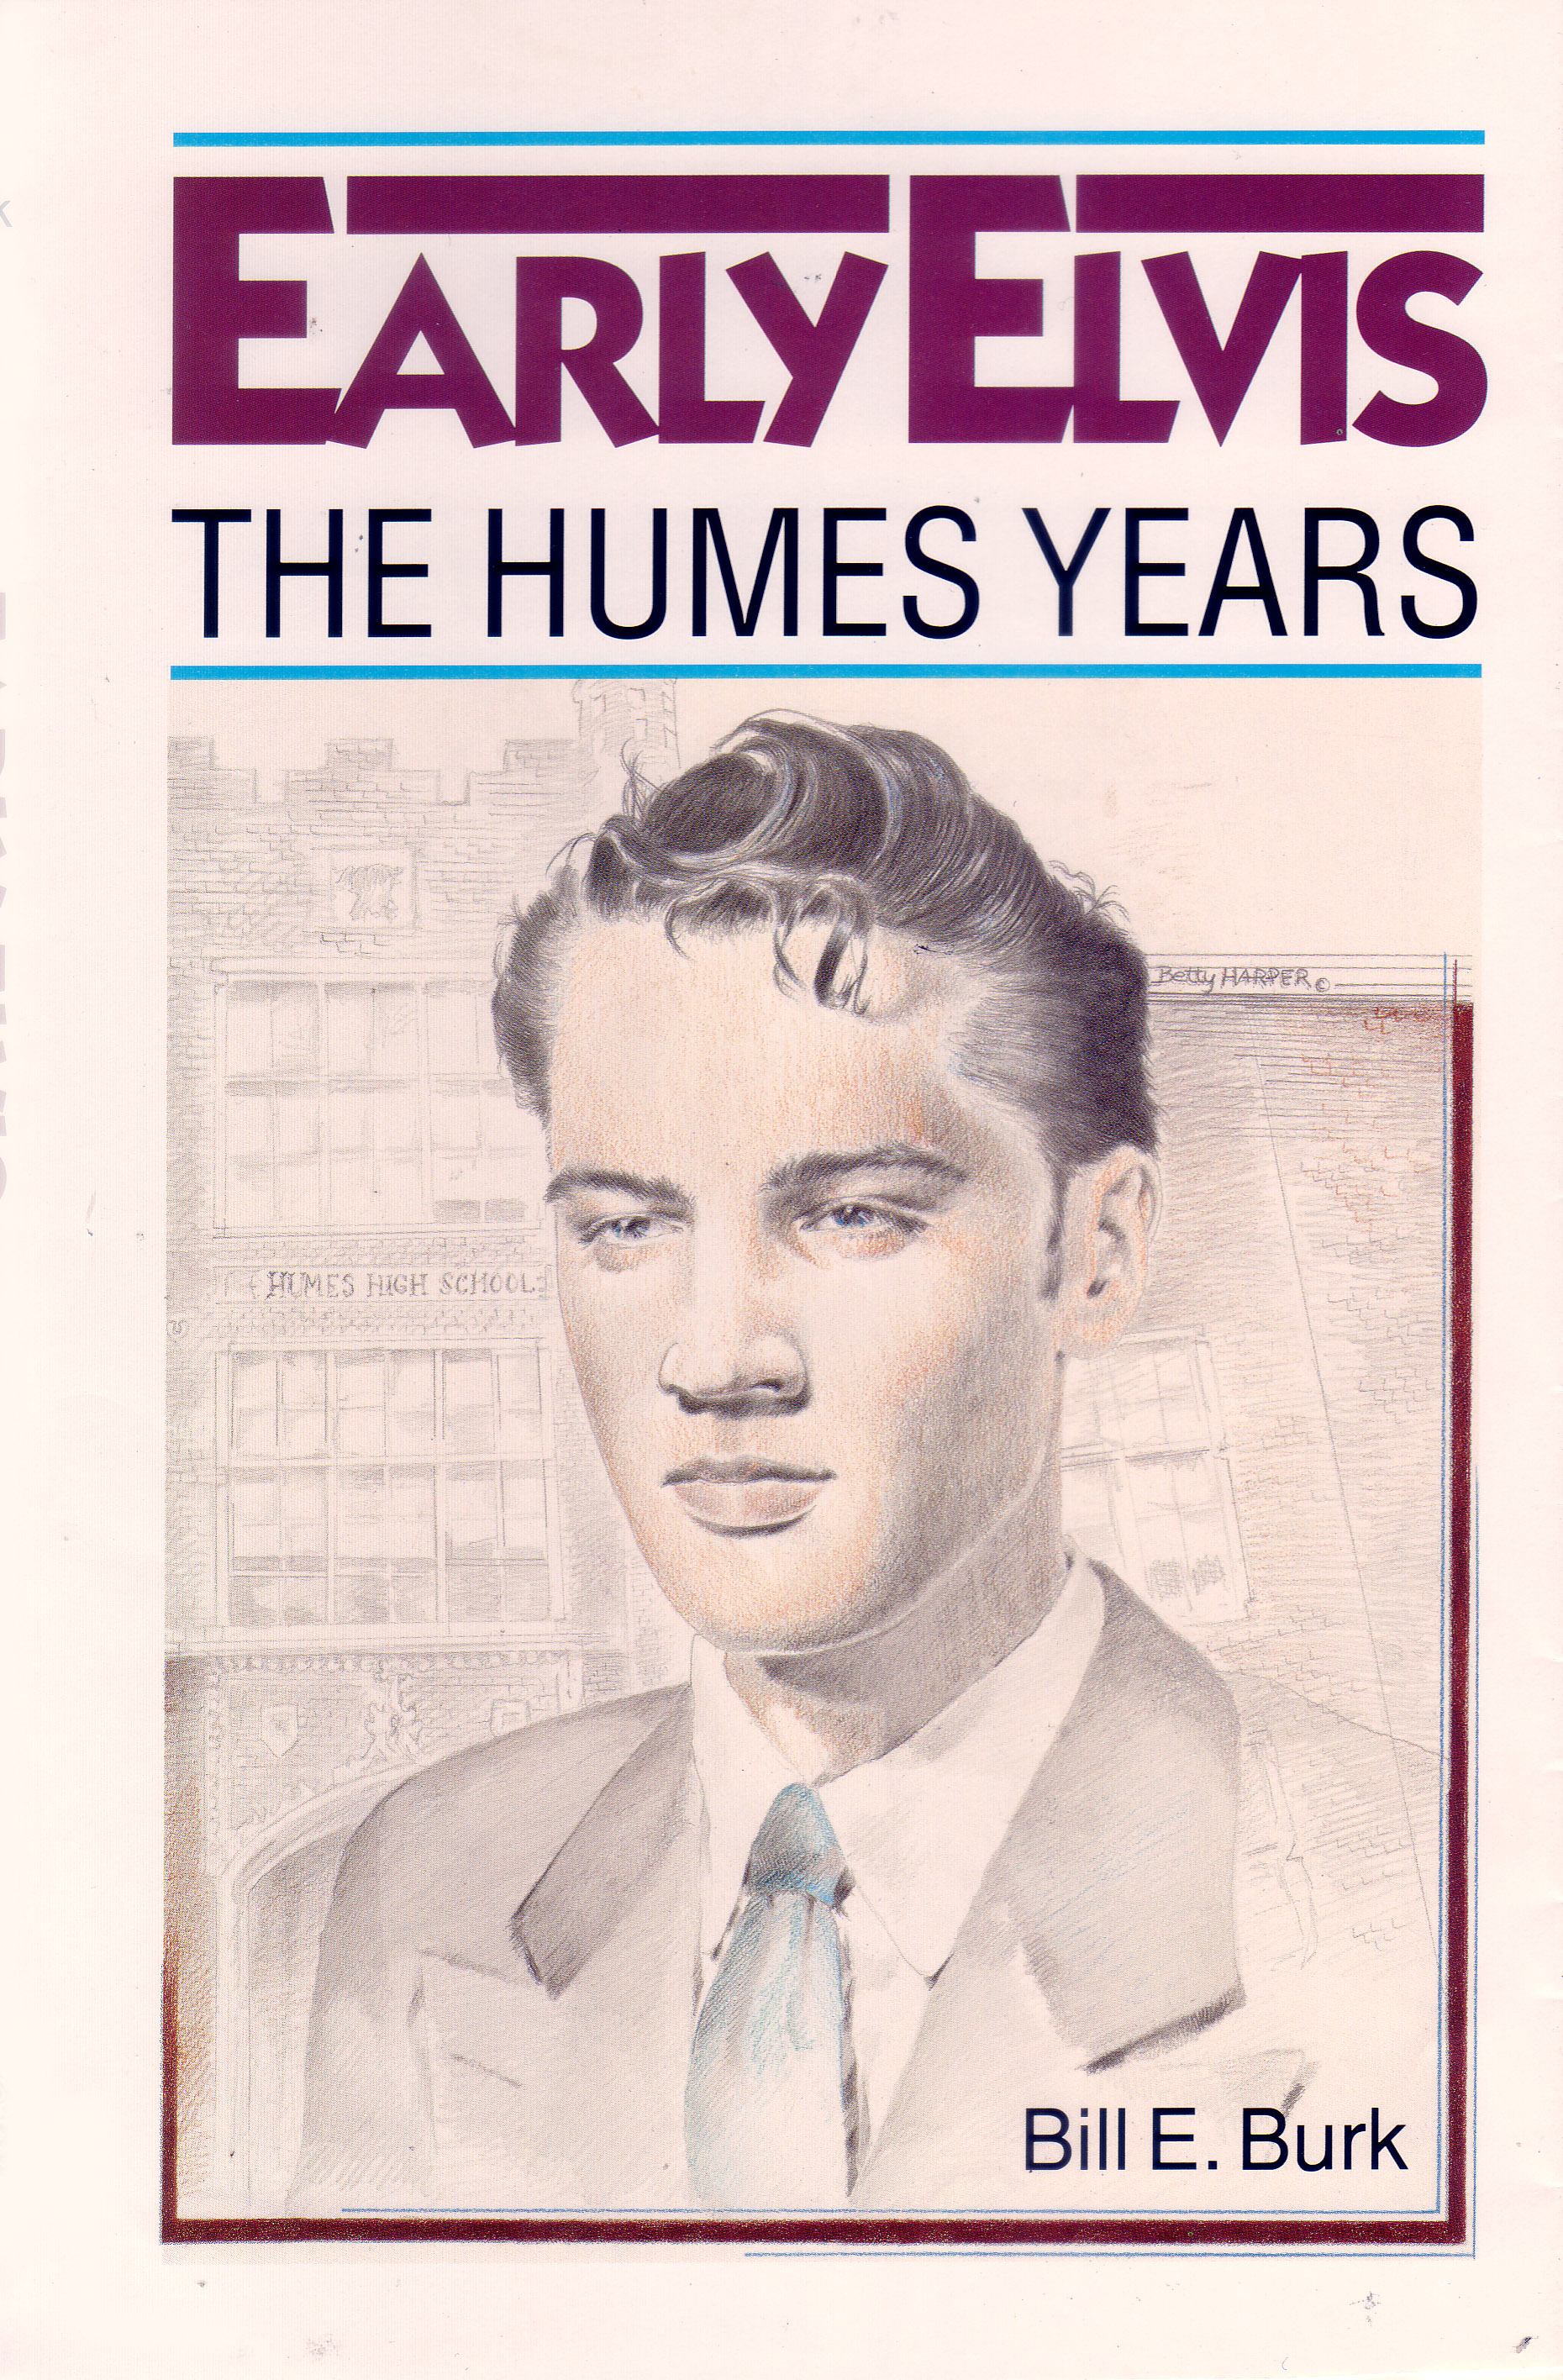 HumesYears